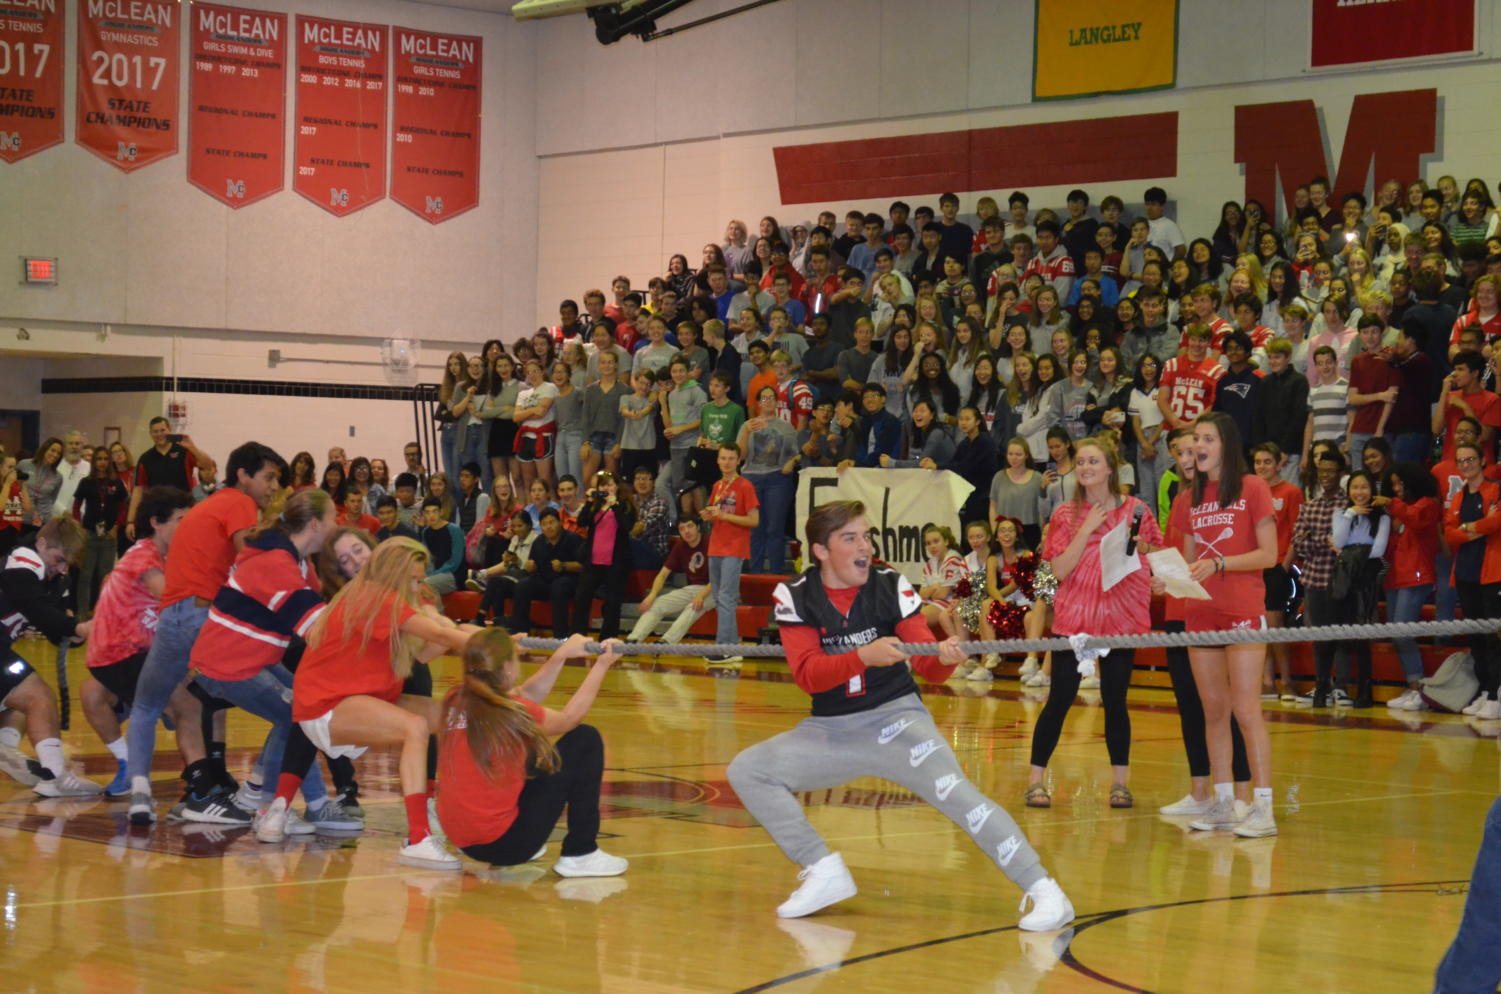 Senior Logan Johnson leads the student side of the student v. faculty game of tug-of-war